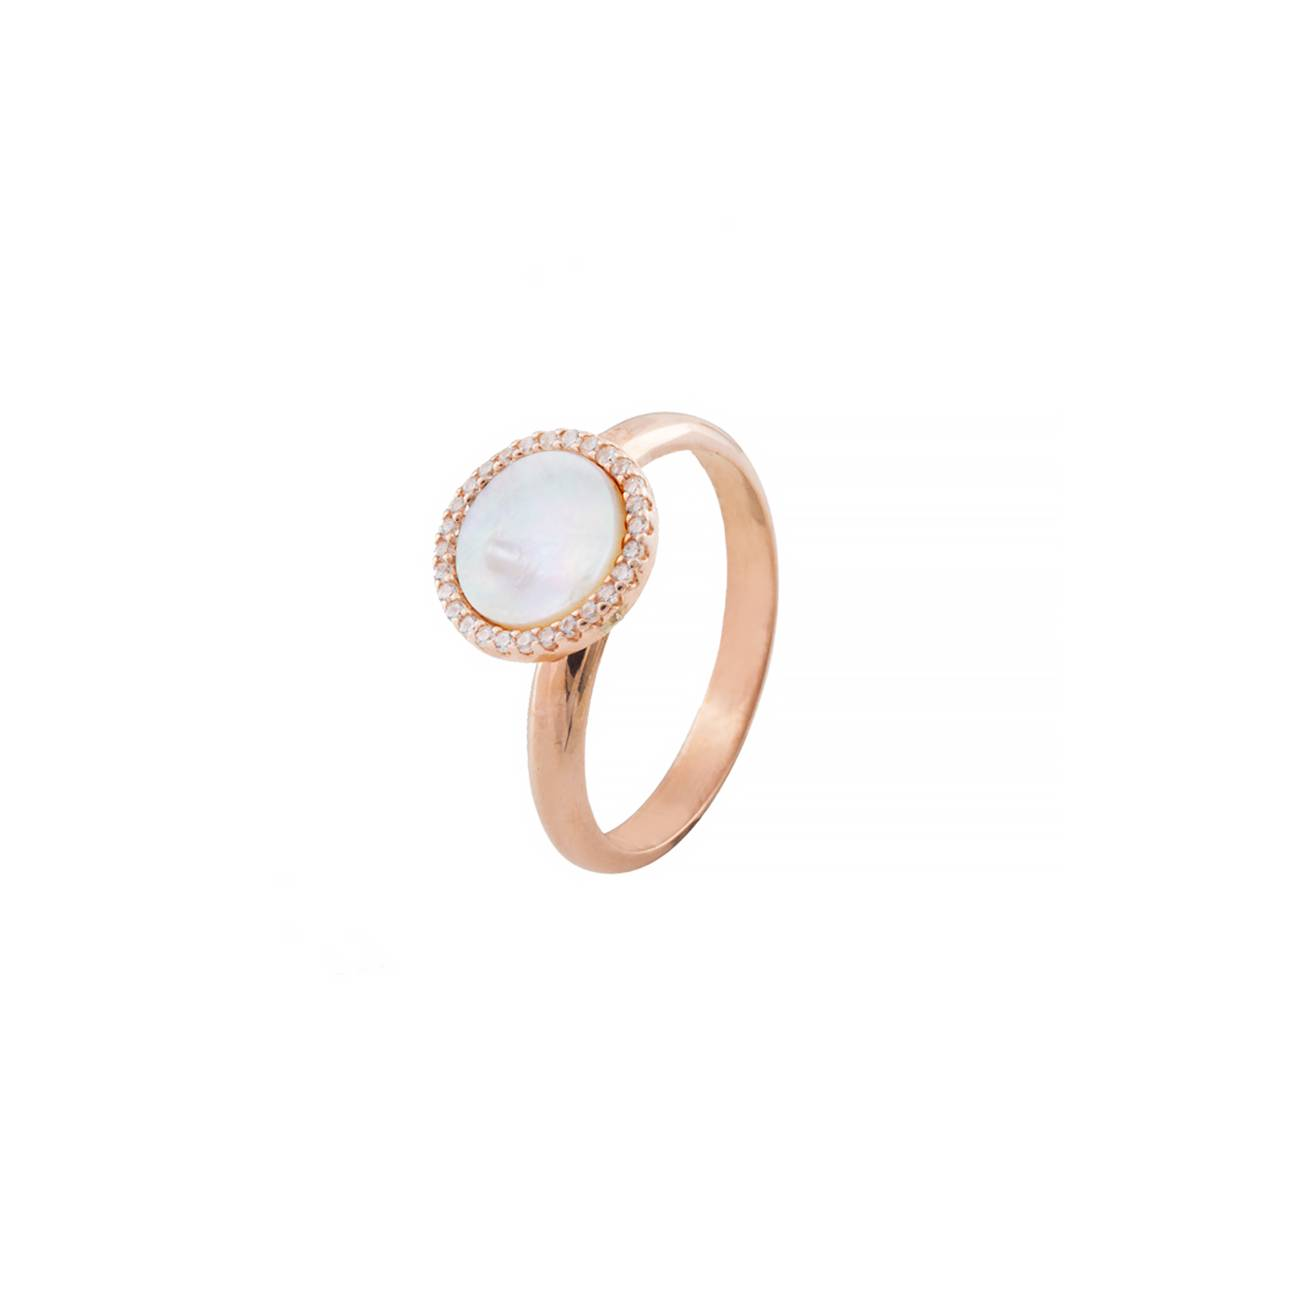 Oxette Inel Gifting Argint 04x05-01430